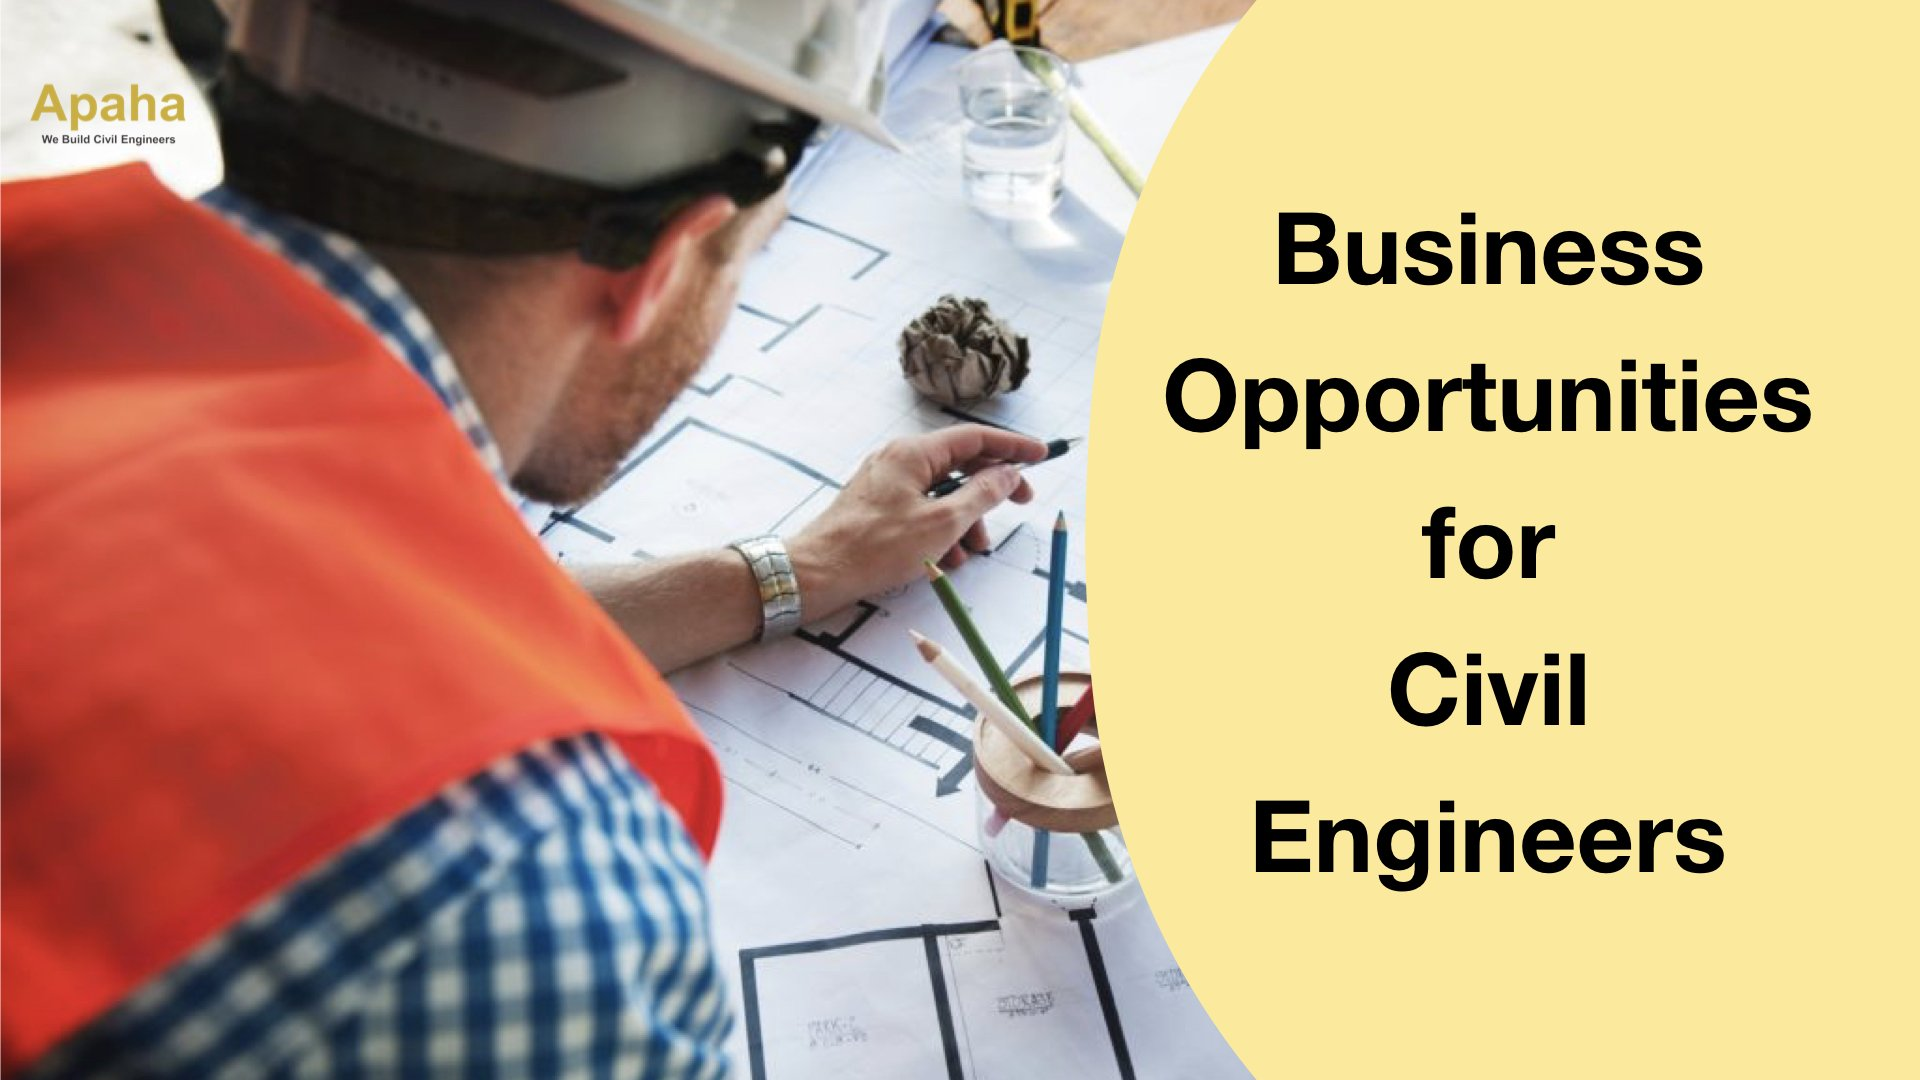 Business Opportunities for Civil Engineers.002_Apaha Trainers and Consultants_PG Diploma in Construction Management_PG Diploma in Civil Engineering